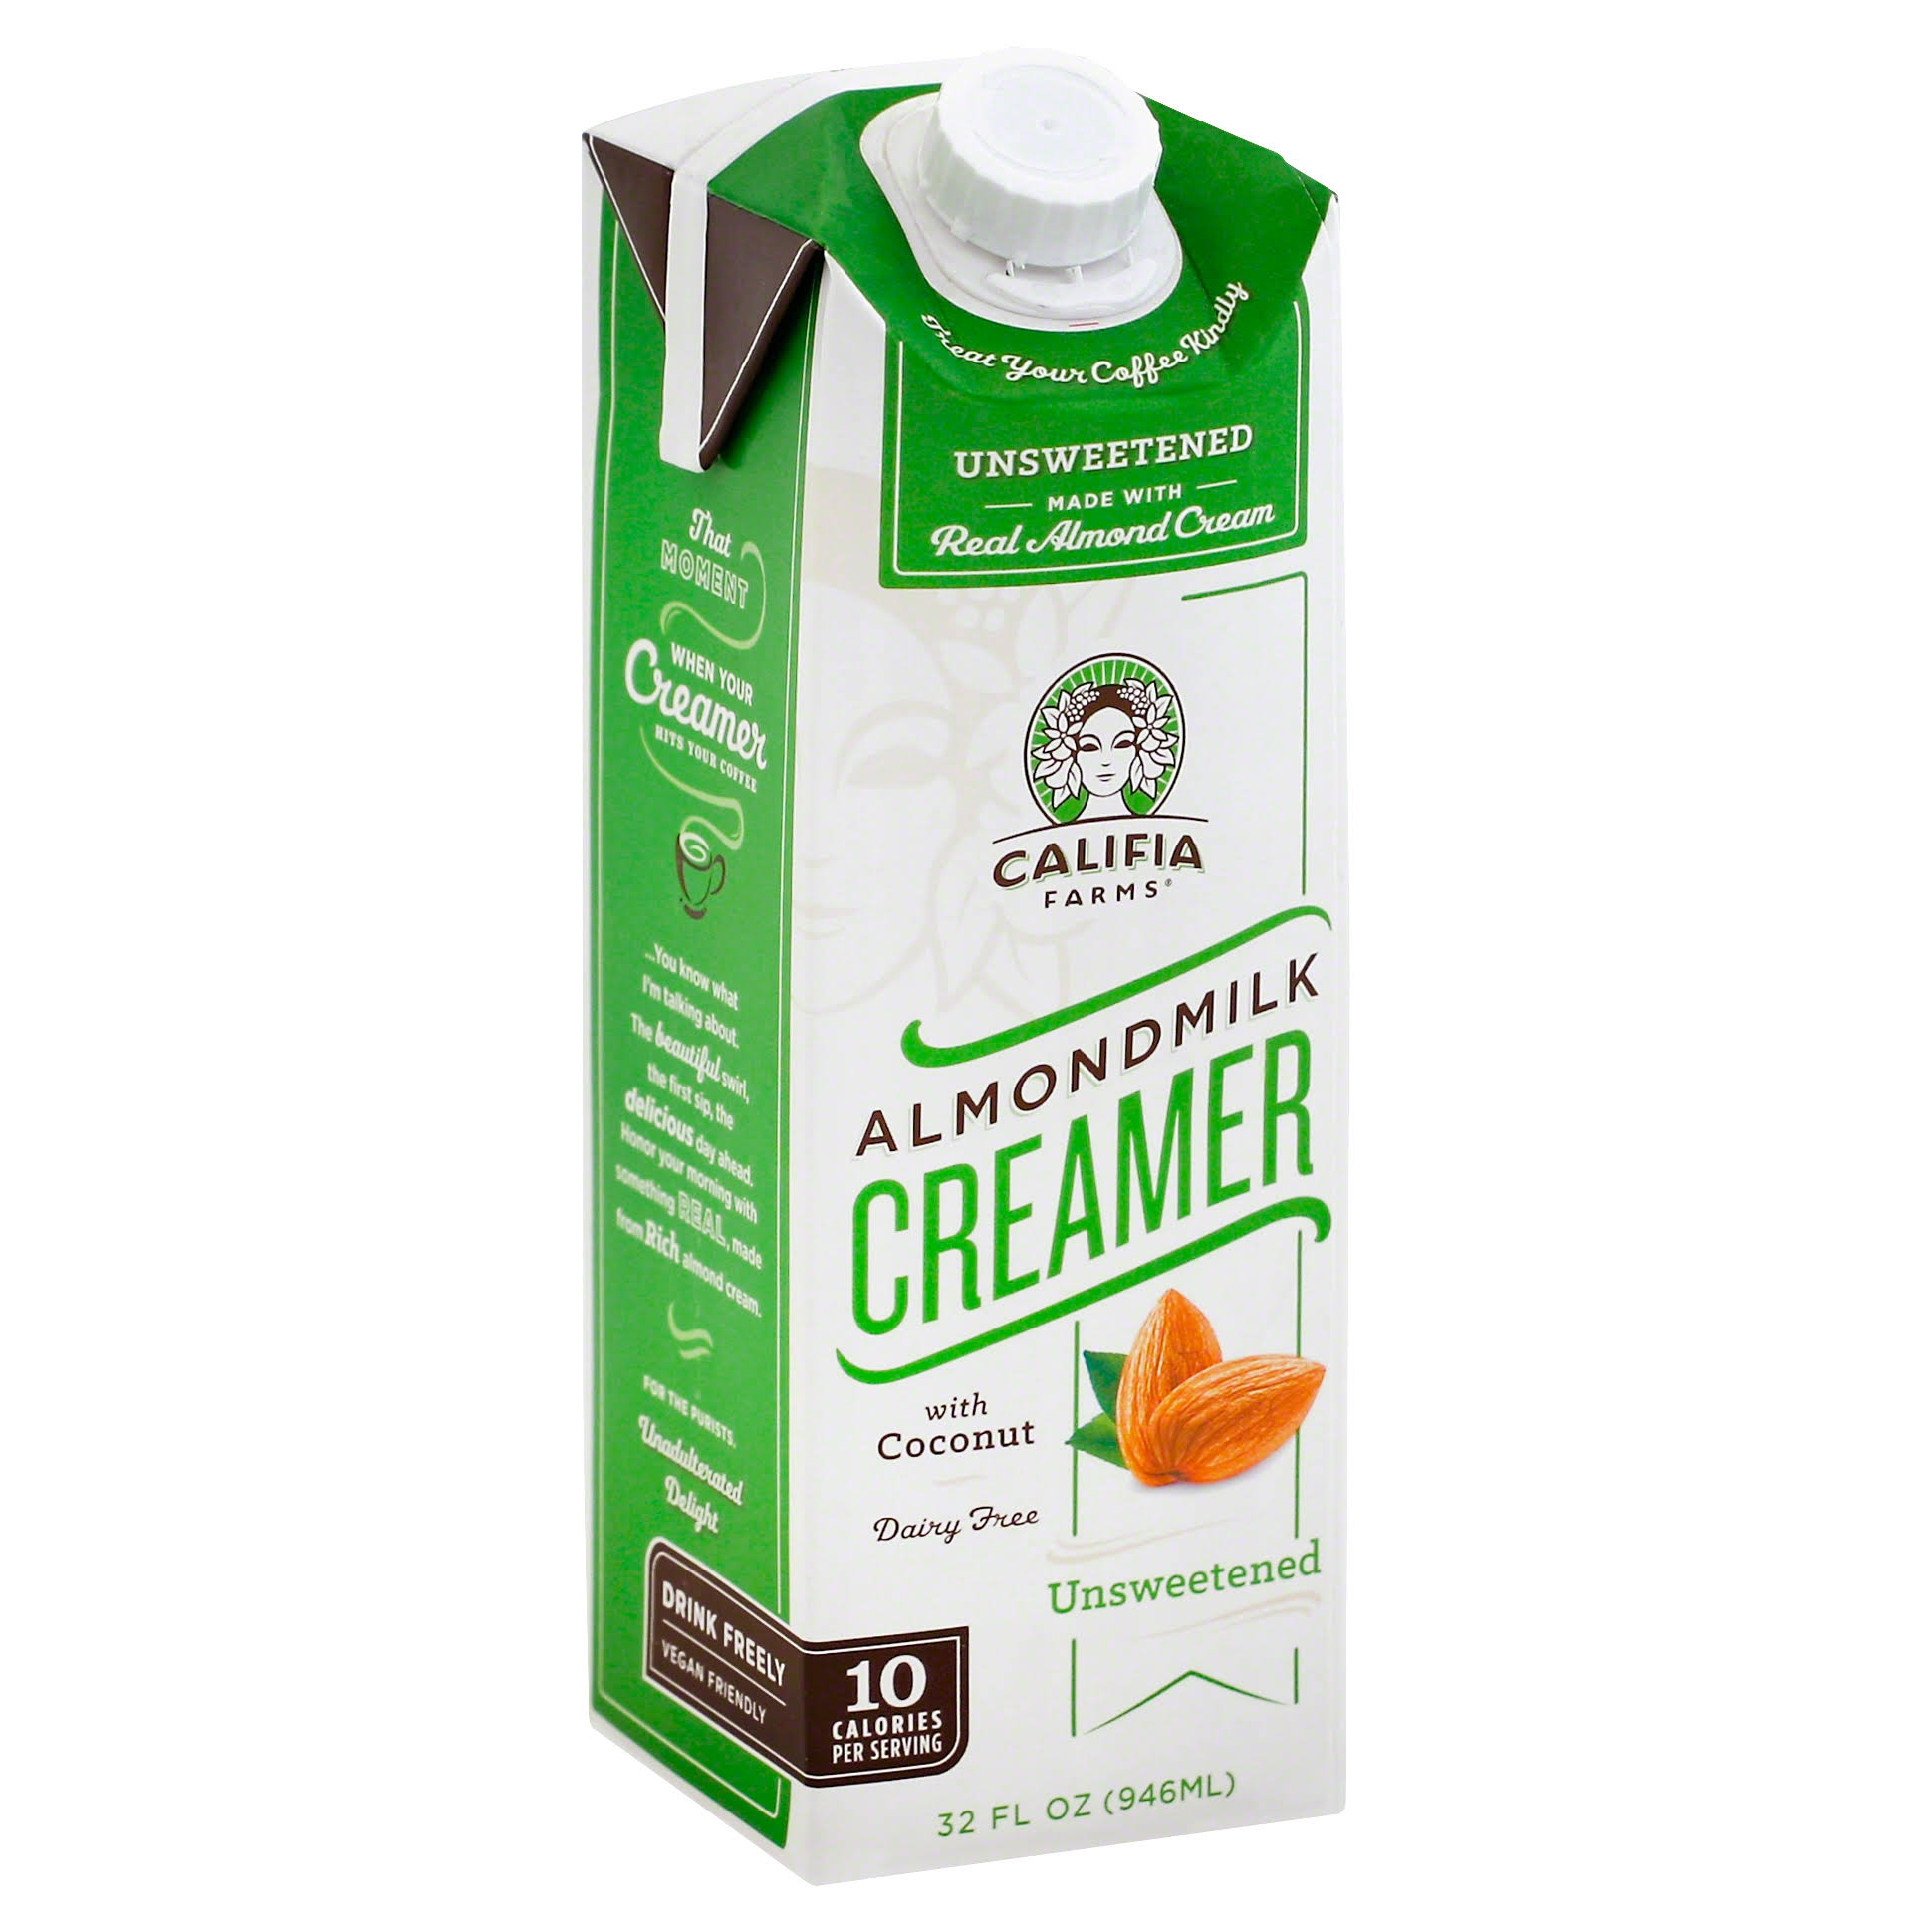 Califia Farms Almond Milk Creamer, Unsweetened - 32 fl oz carton